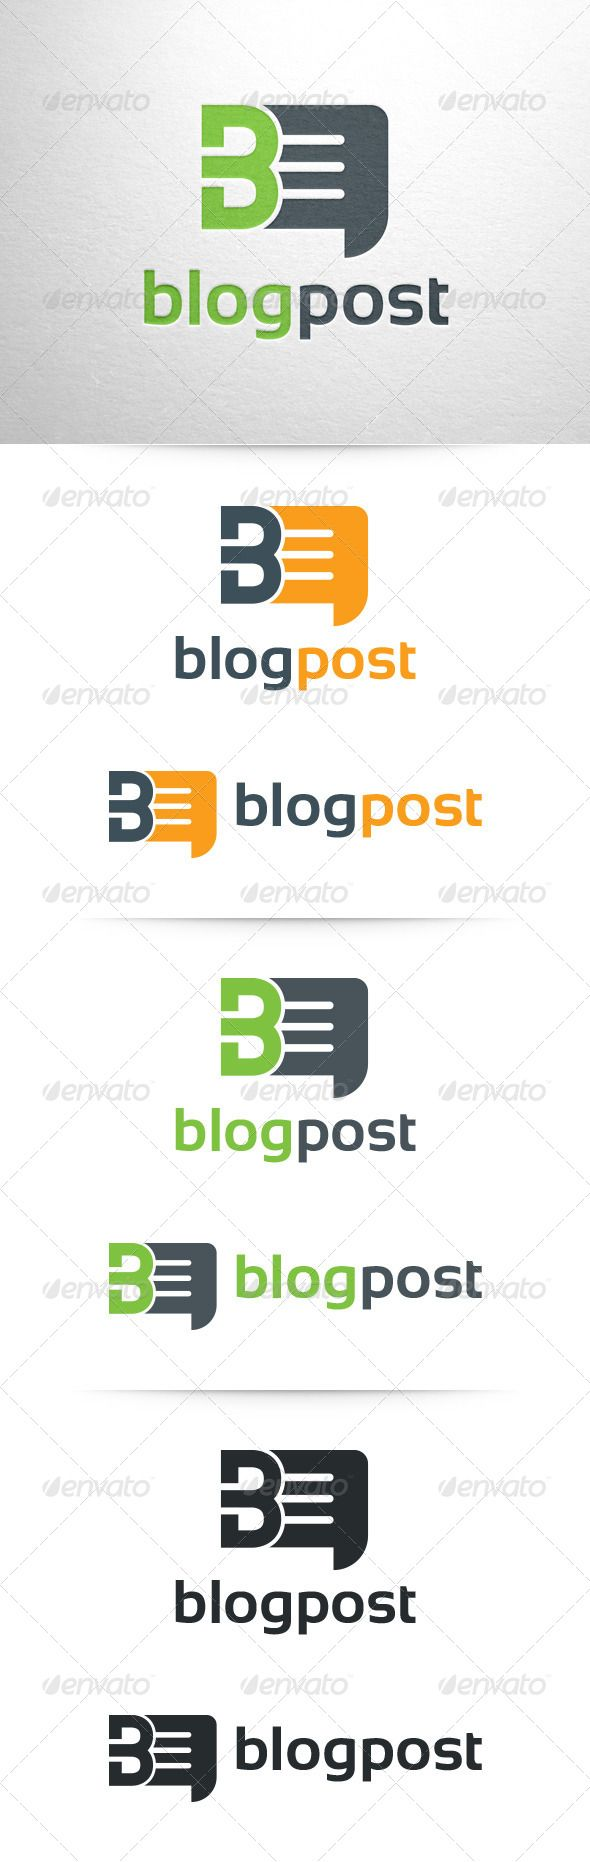 Logotype butterfly and letter b in different colour variants on a - Blogpost Letter B Logo